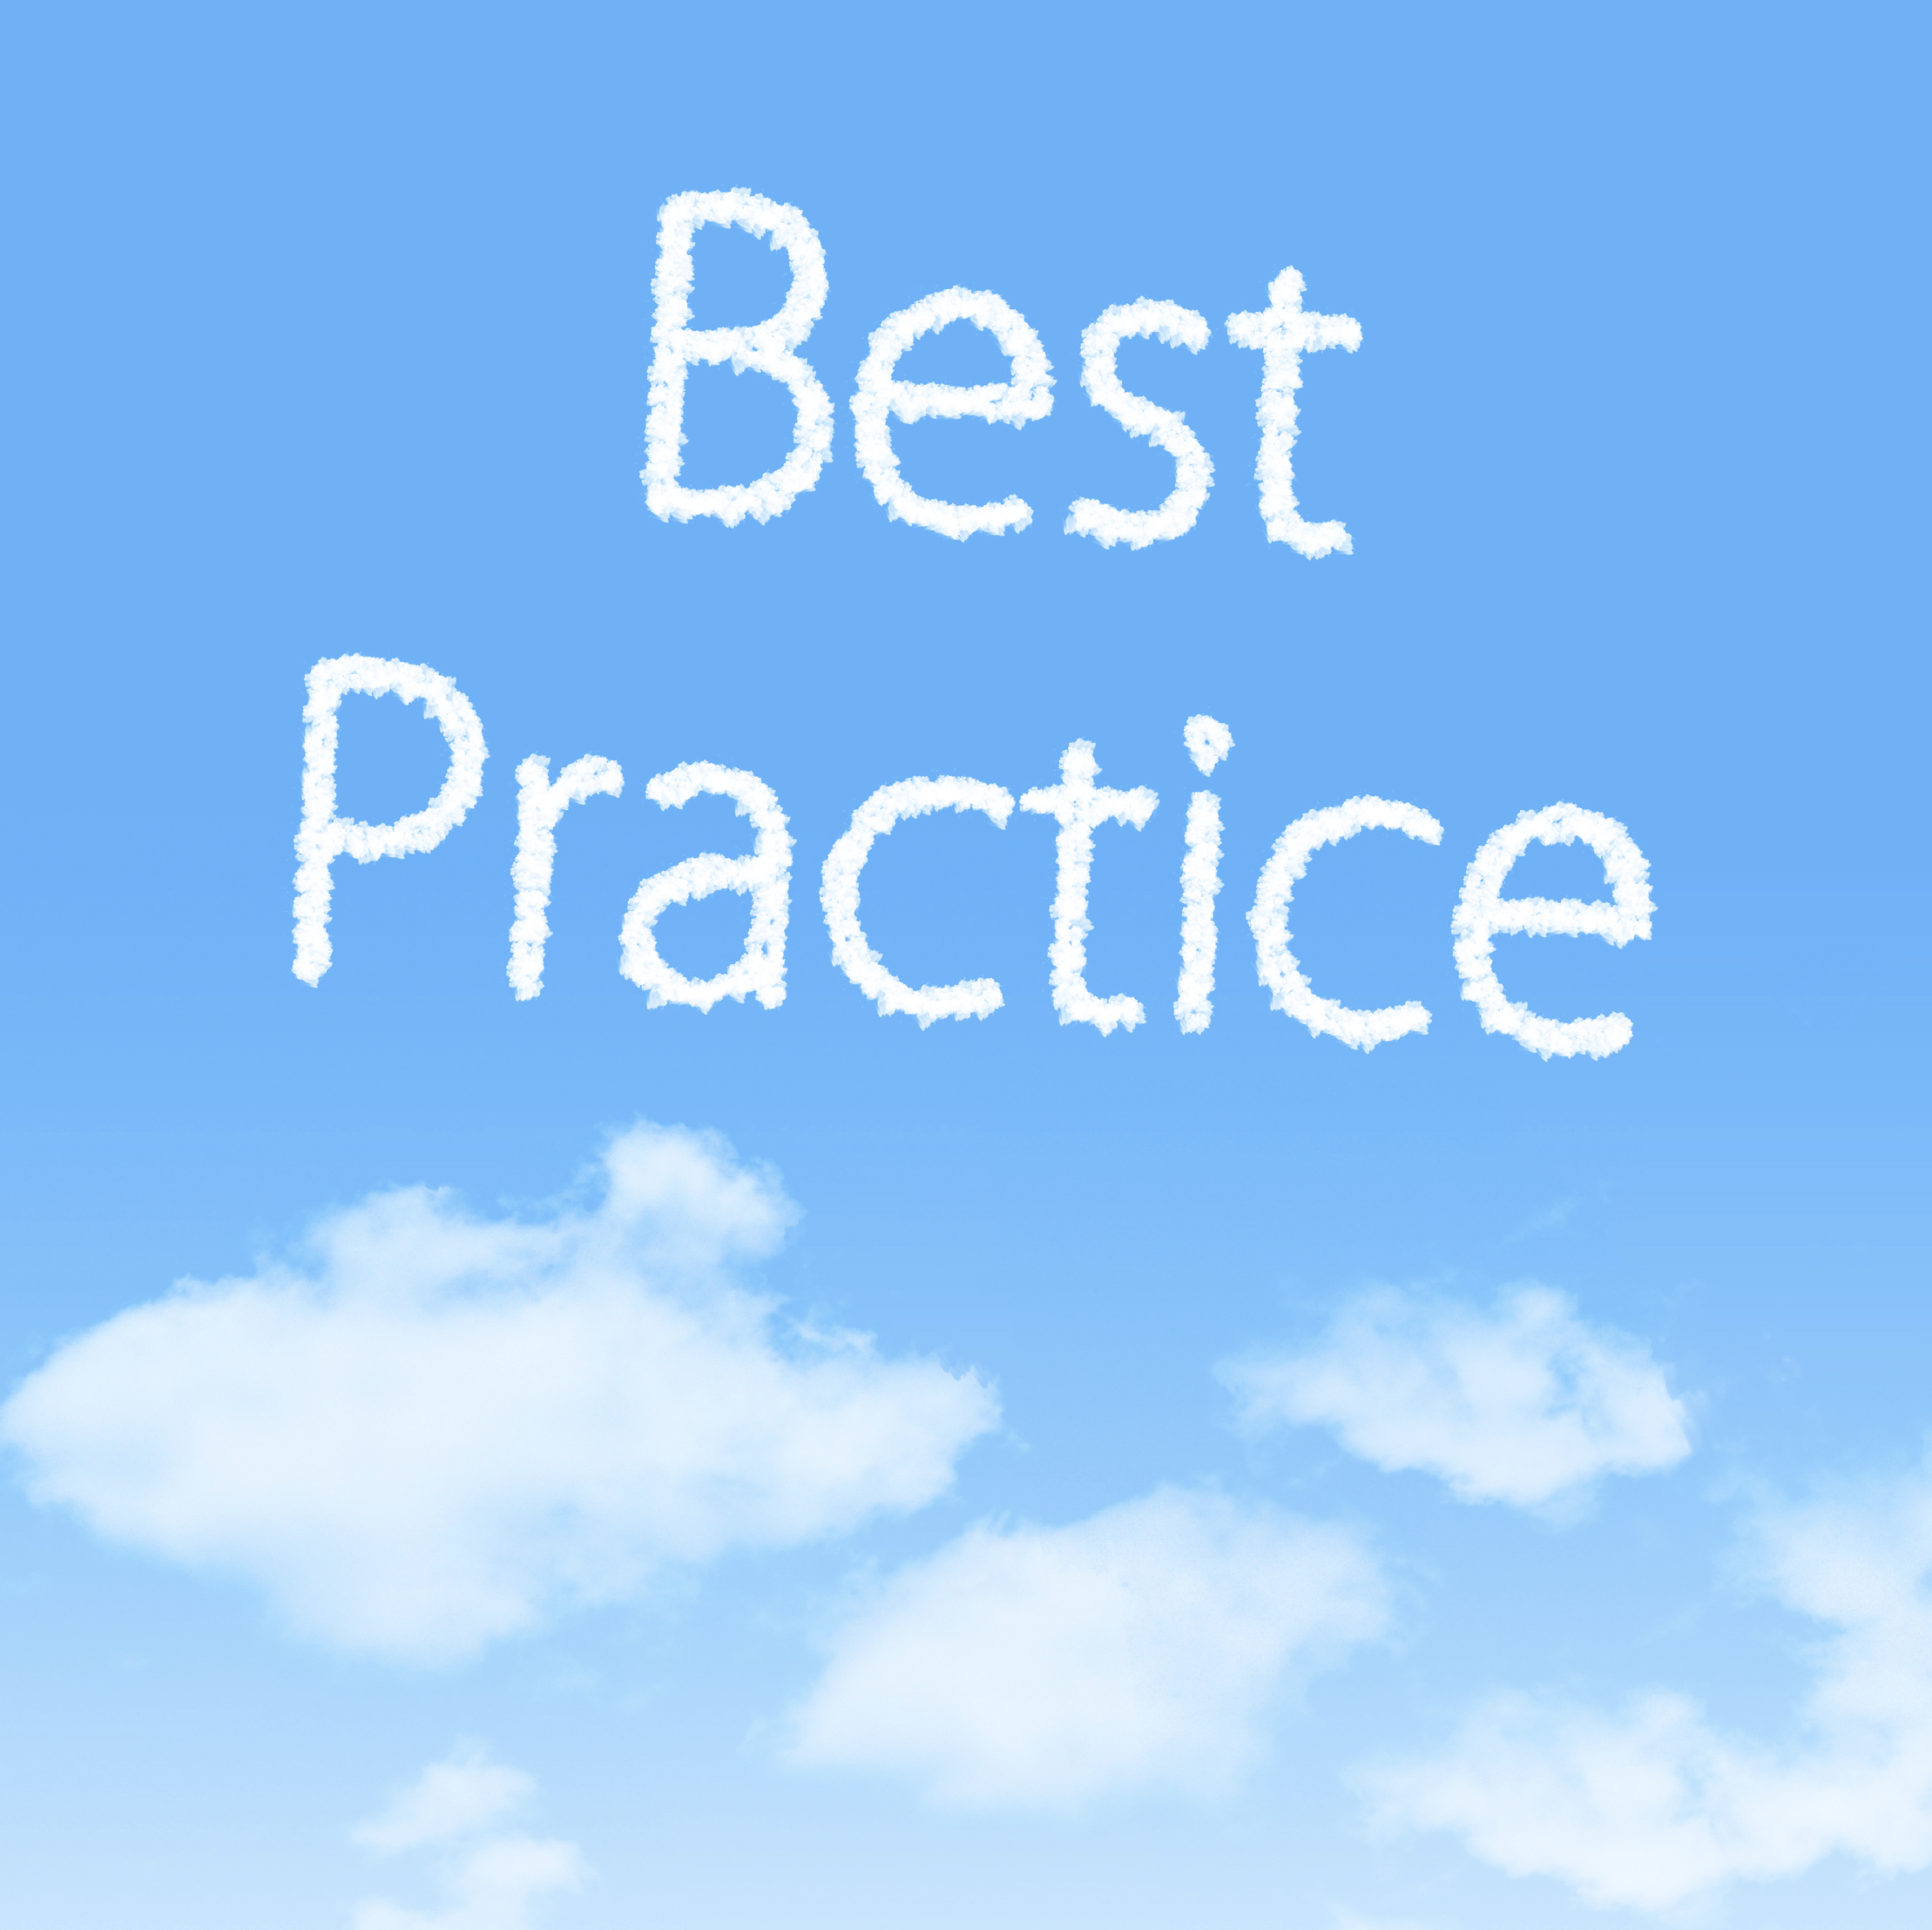 Best Practice cloud icon with design on blue sky background